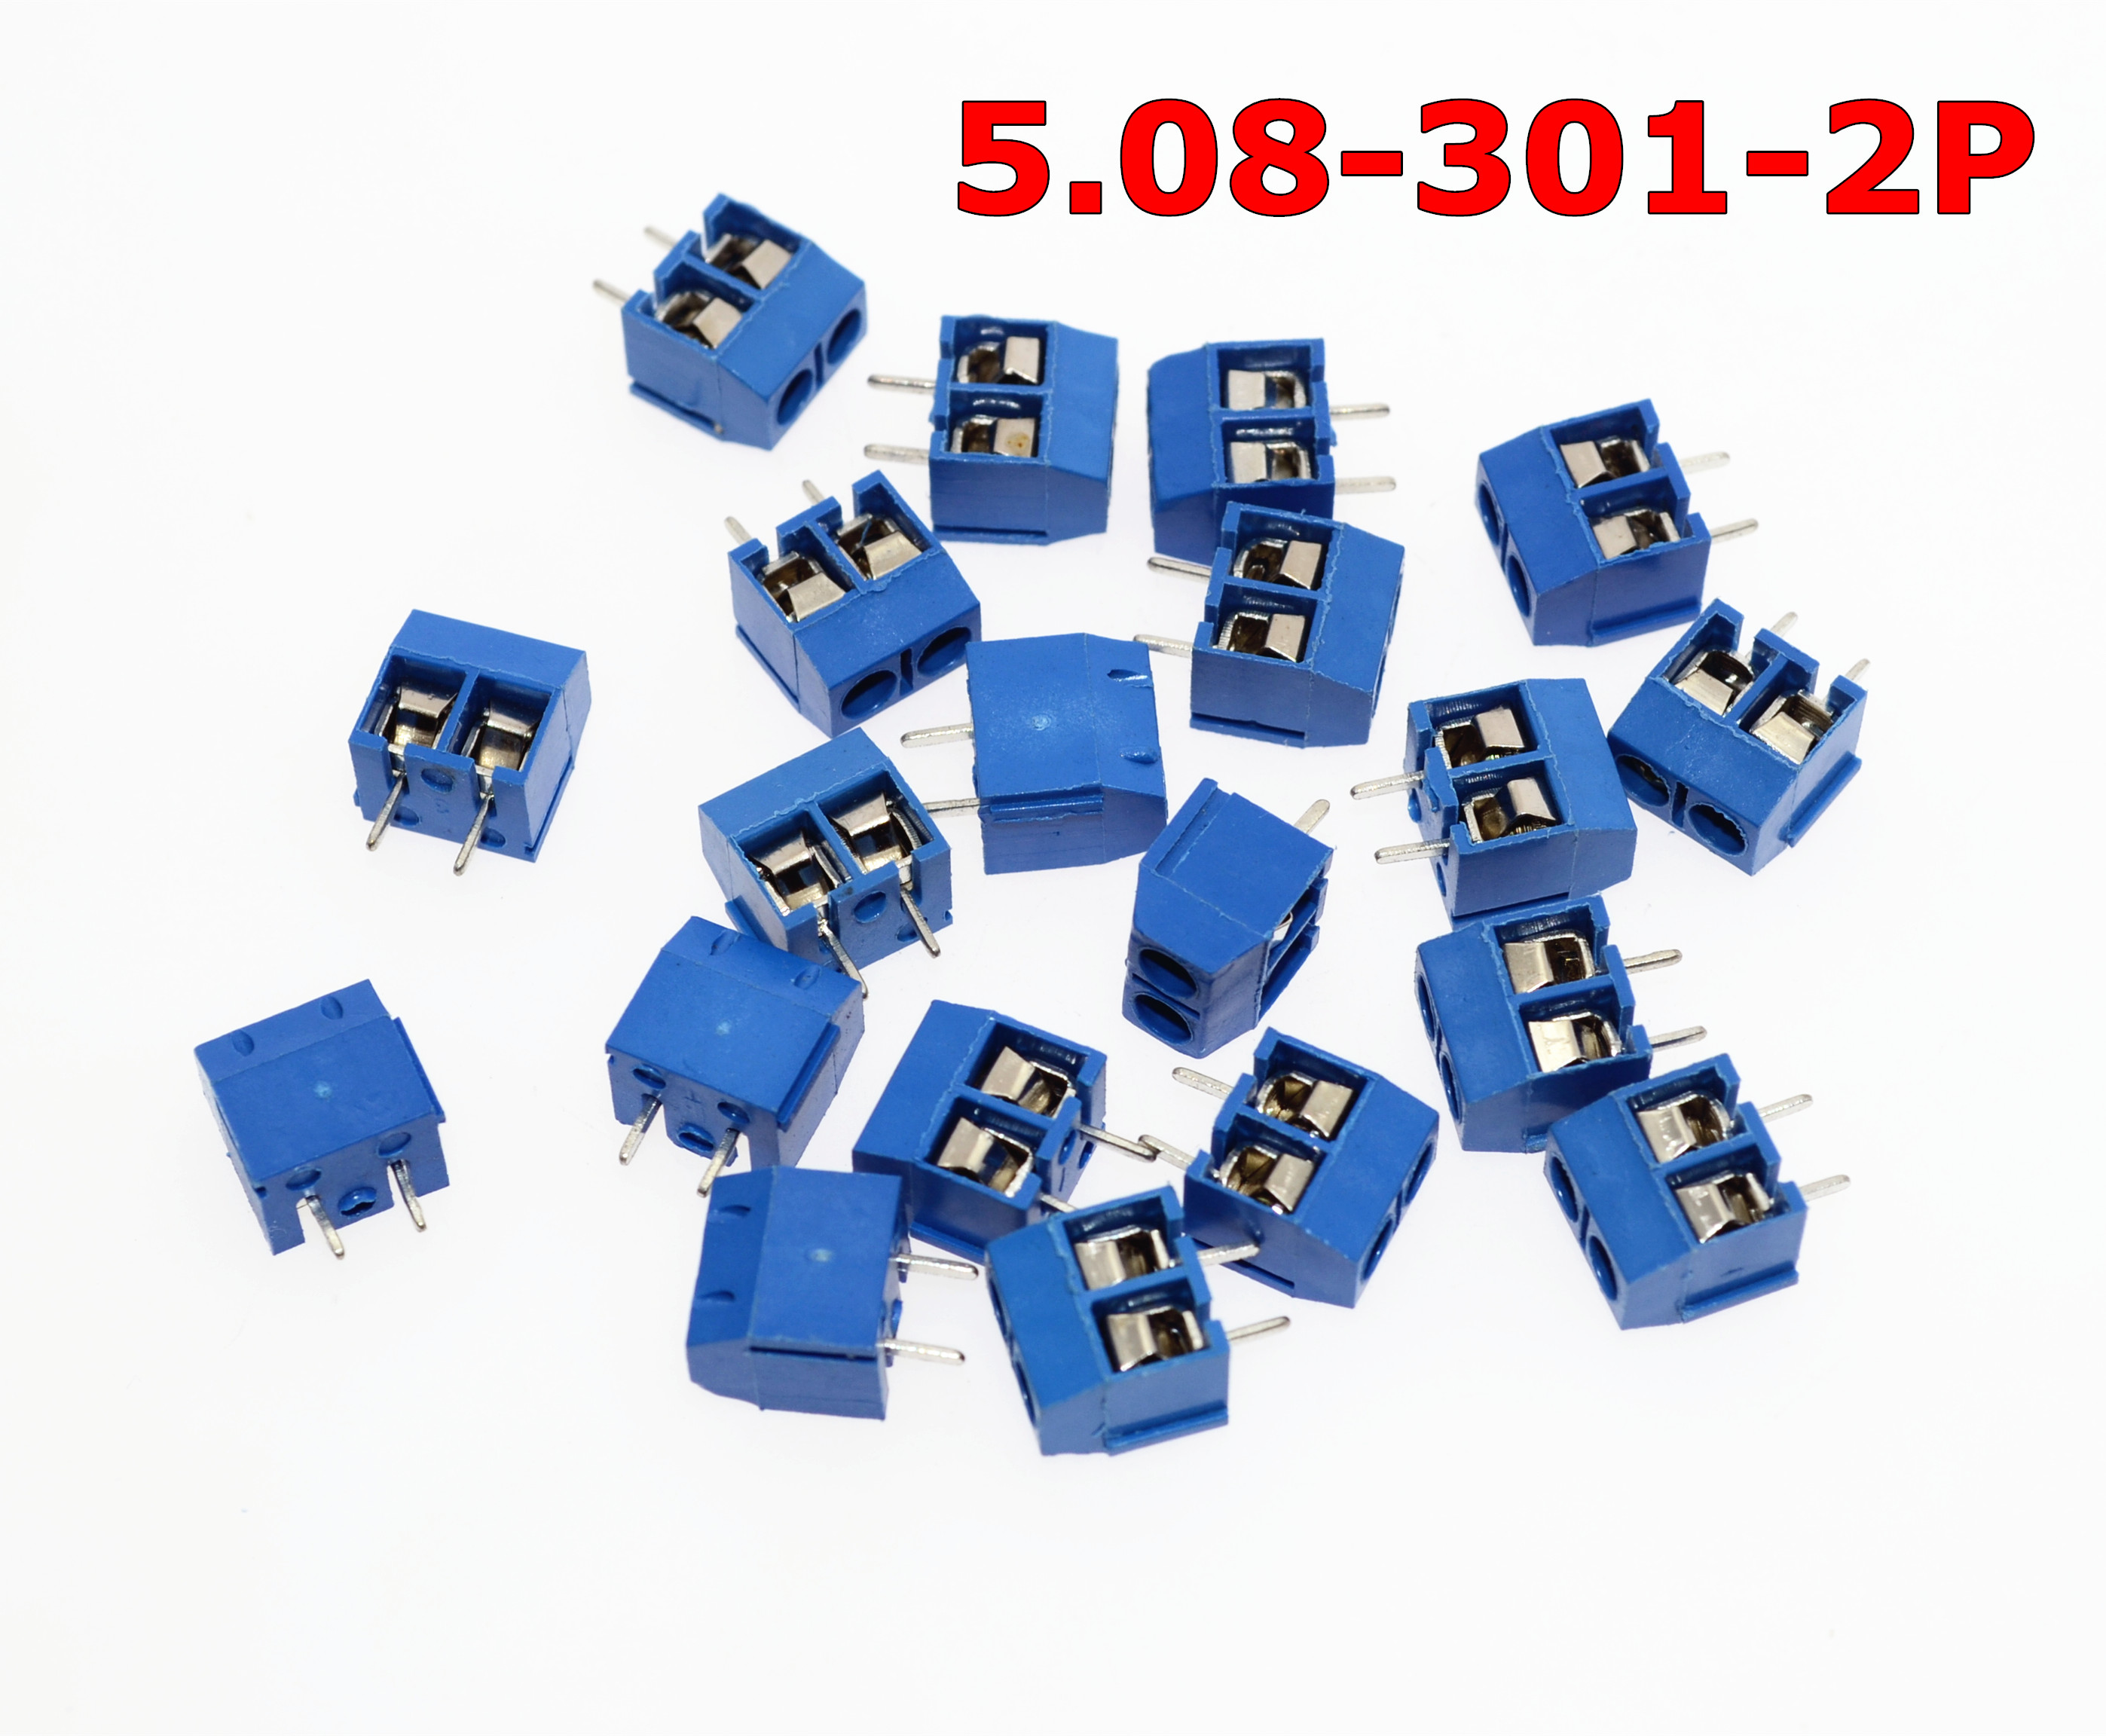 Free Shipping 5.08-301-2P 301-2P 100PCS 2 Pin Screw Terminal Block Connector 5mm PitchFree Shipping 5.08-301-2P 301-2P 100PCS 2 Pin Screw Terminal Block Connector 5mm Pitch